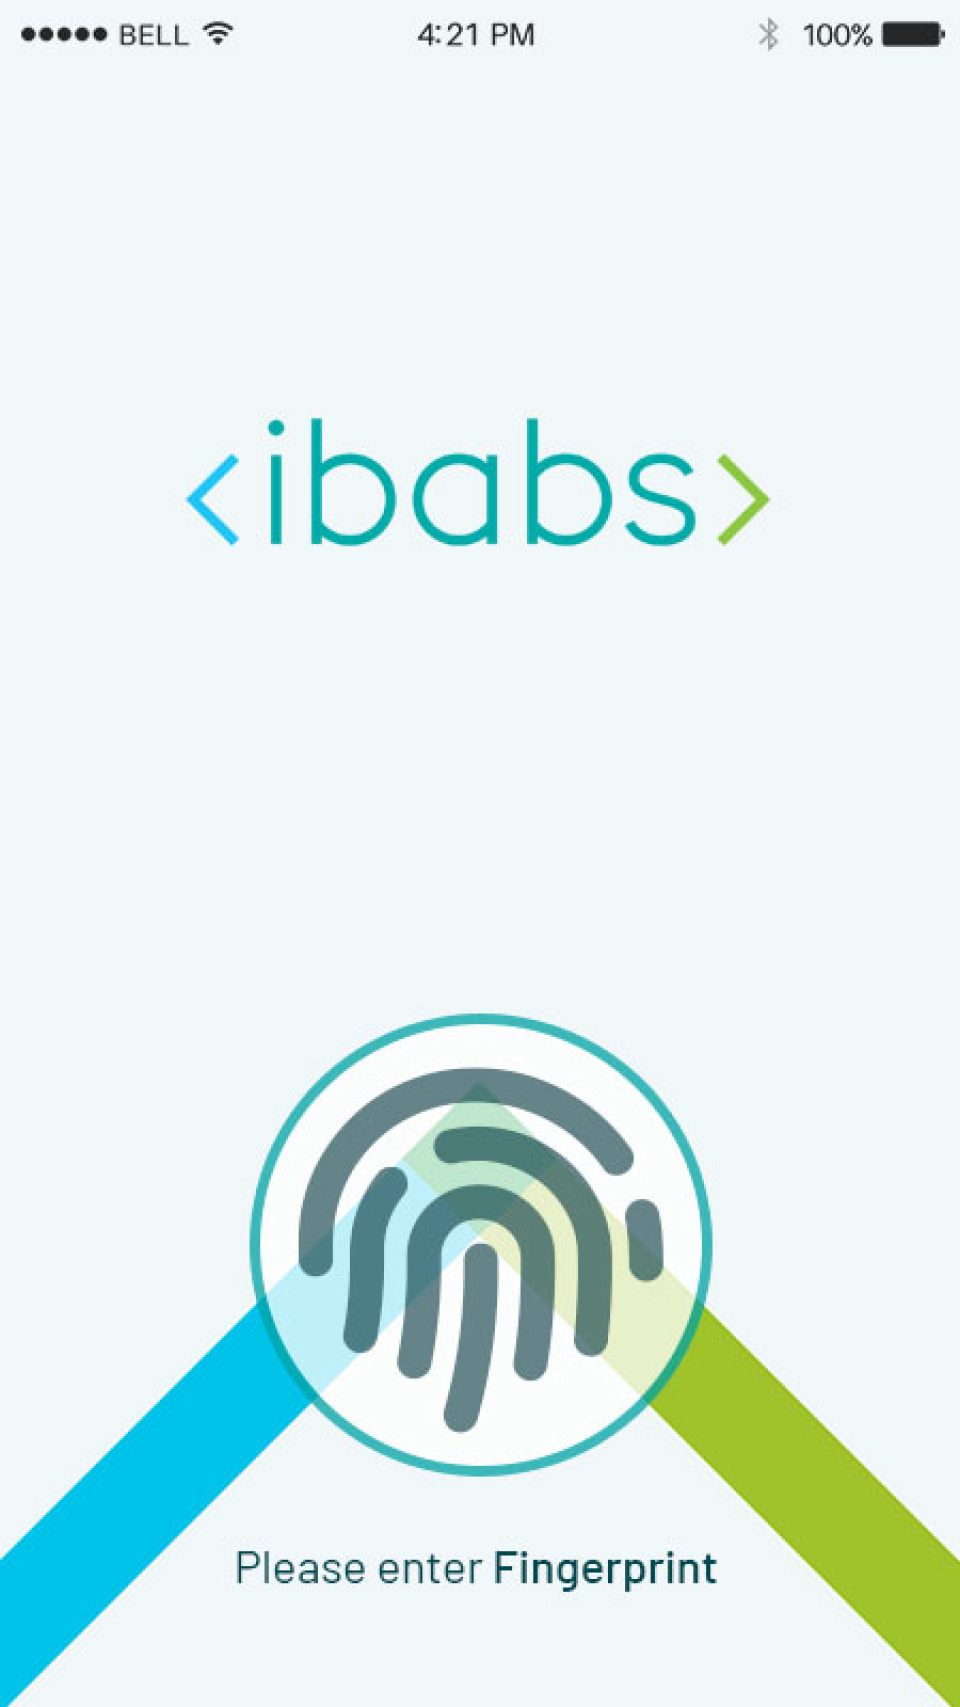 iBabs mobile apps utilize biometric authentication methods